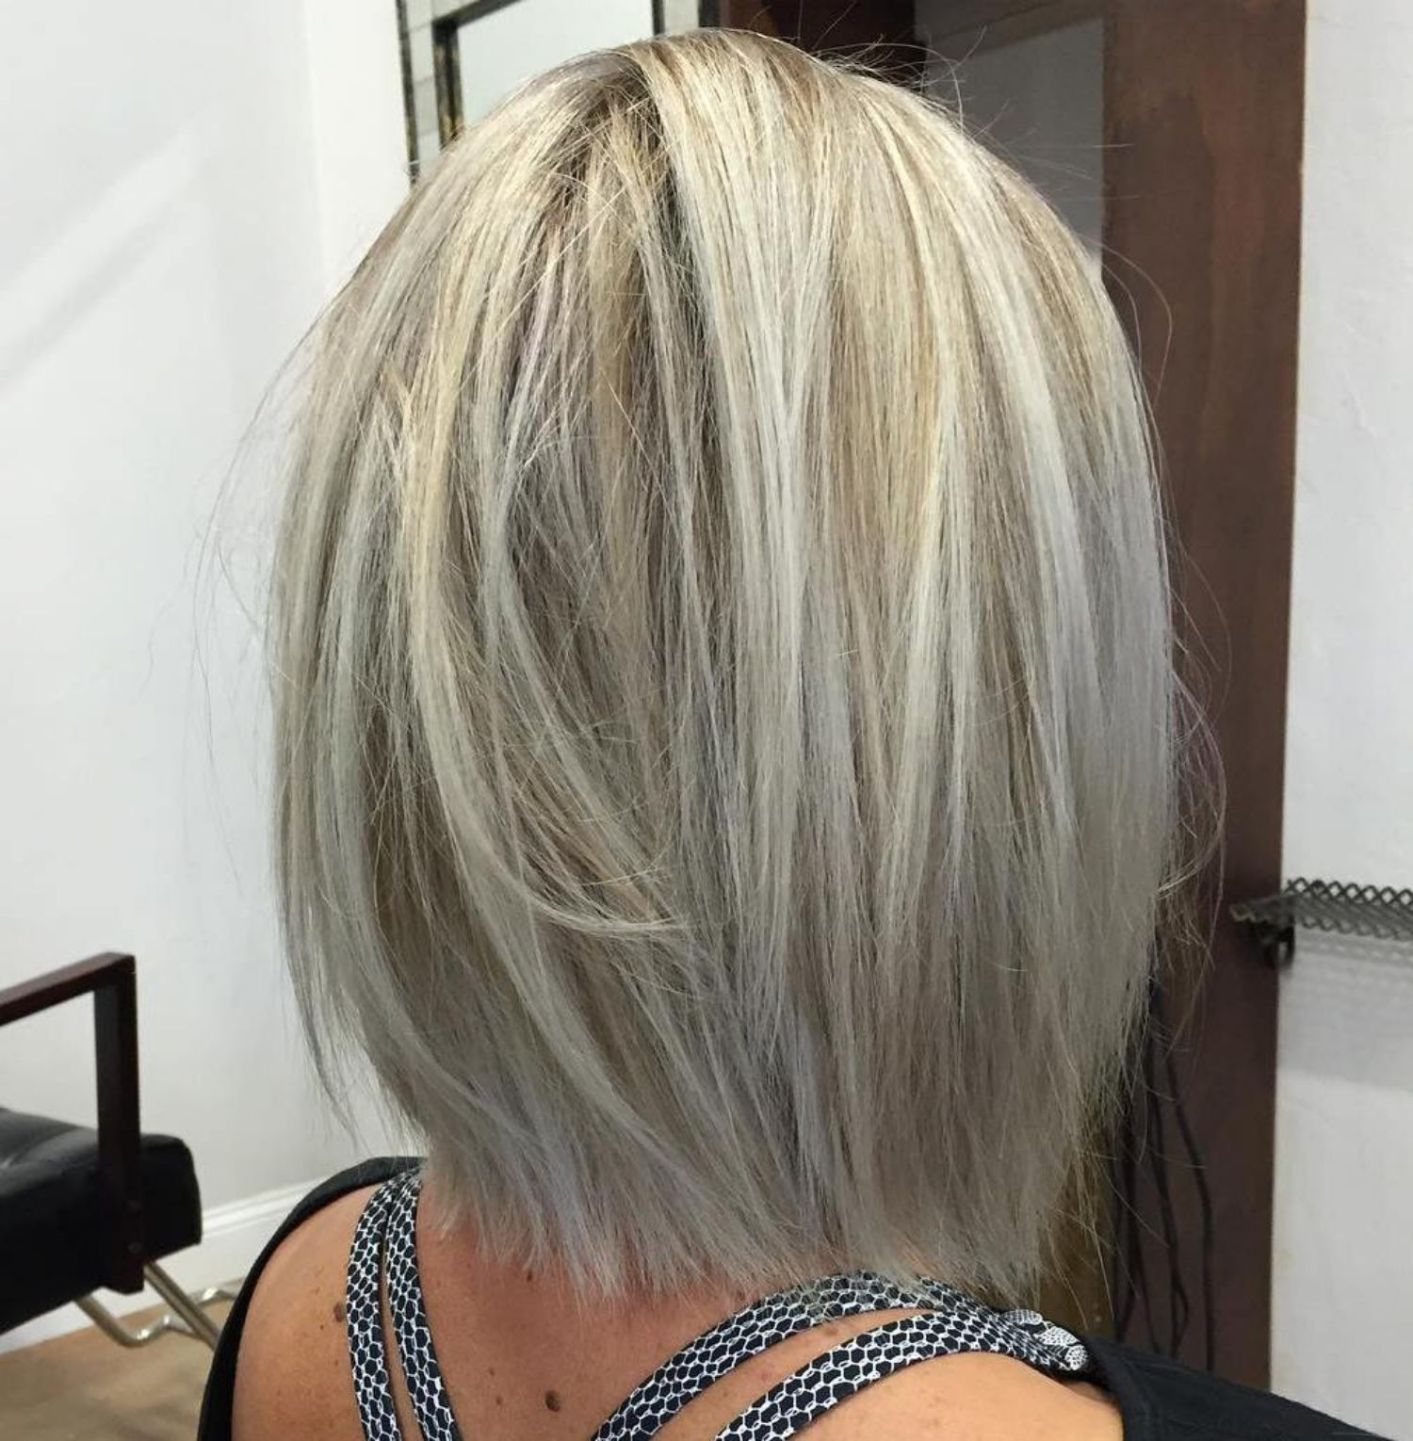 Medium Hair Bob Styles